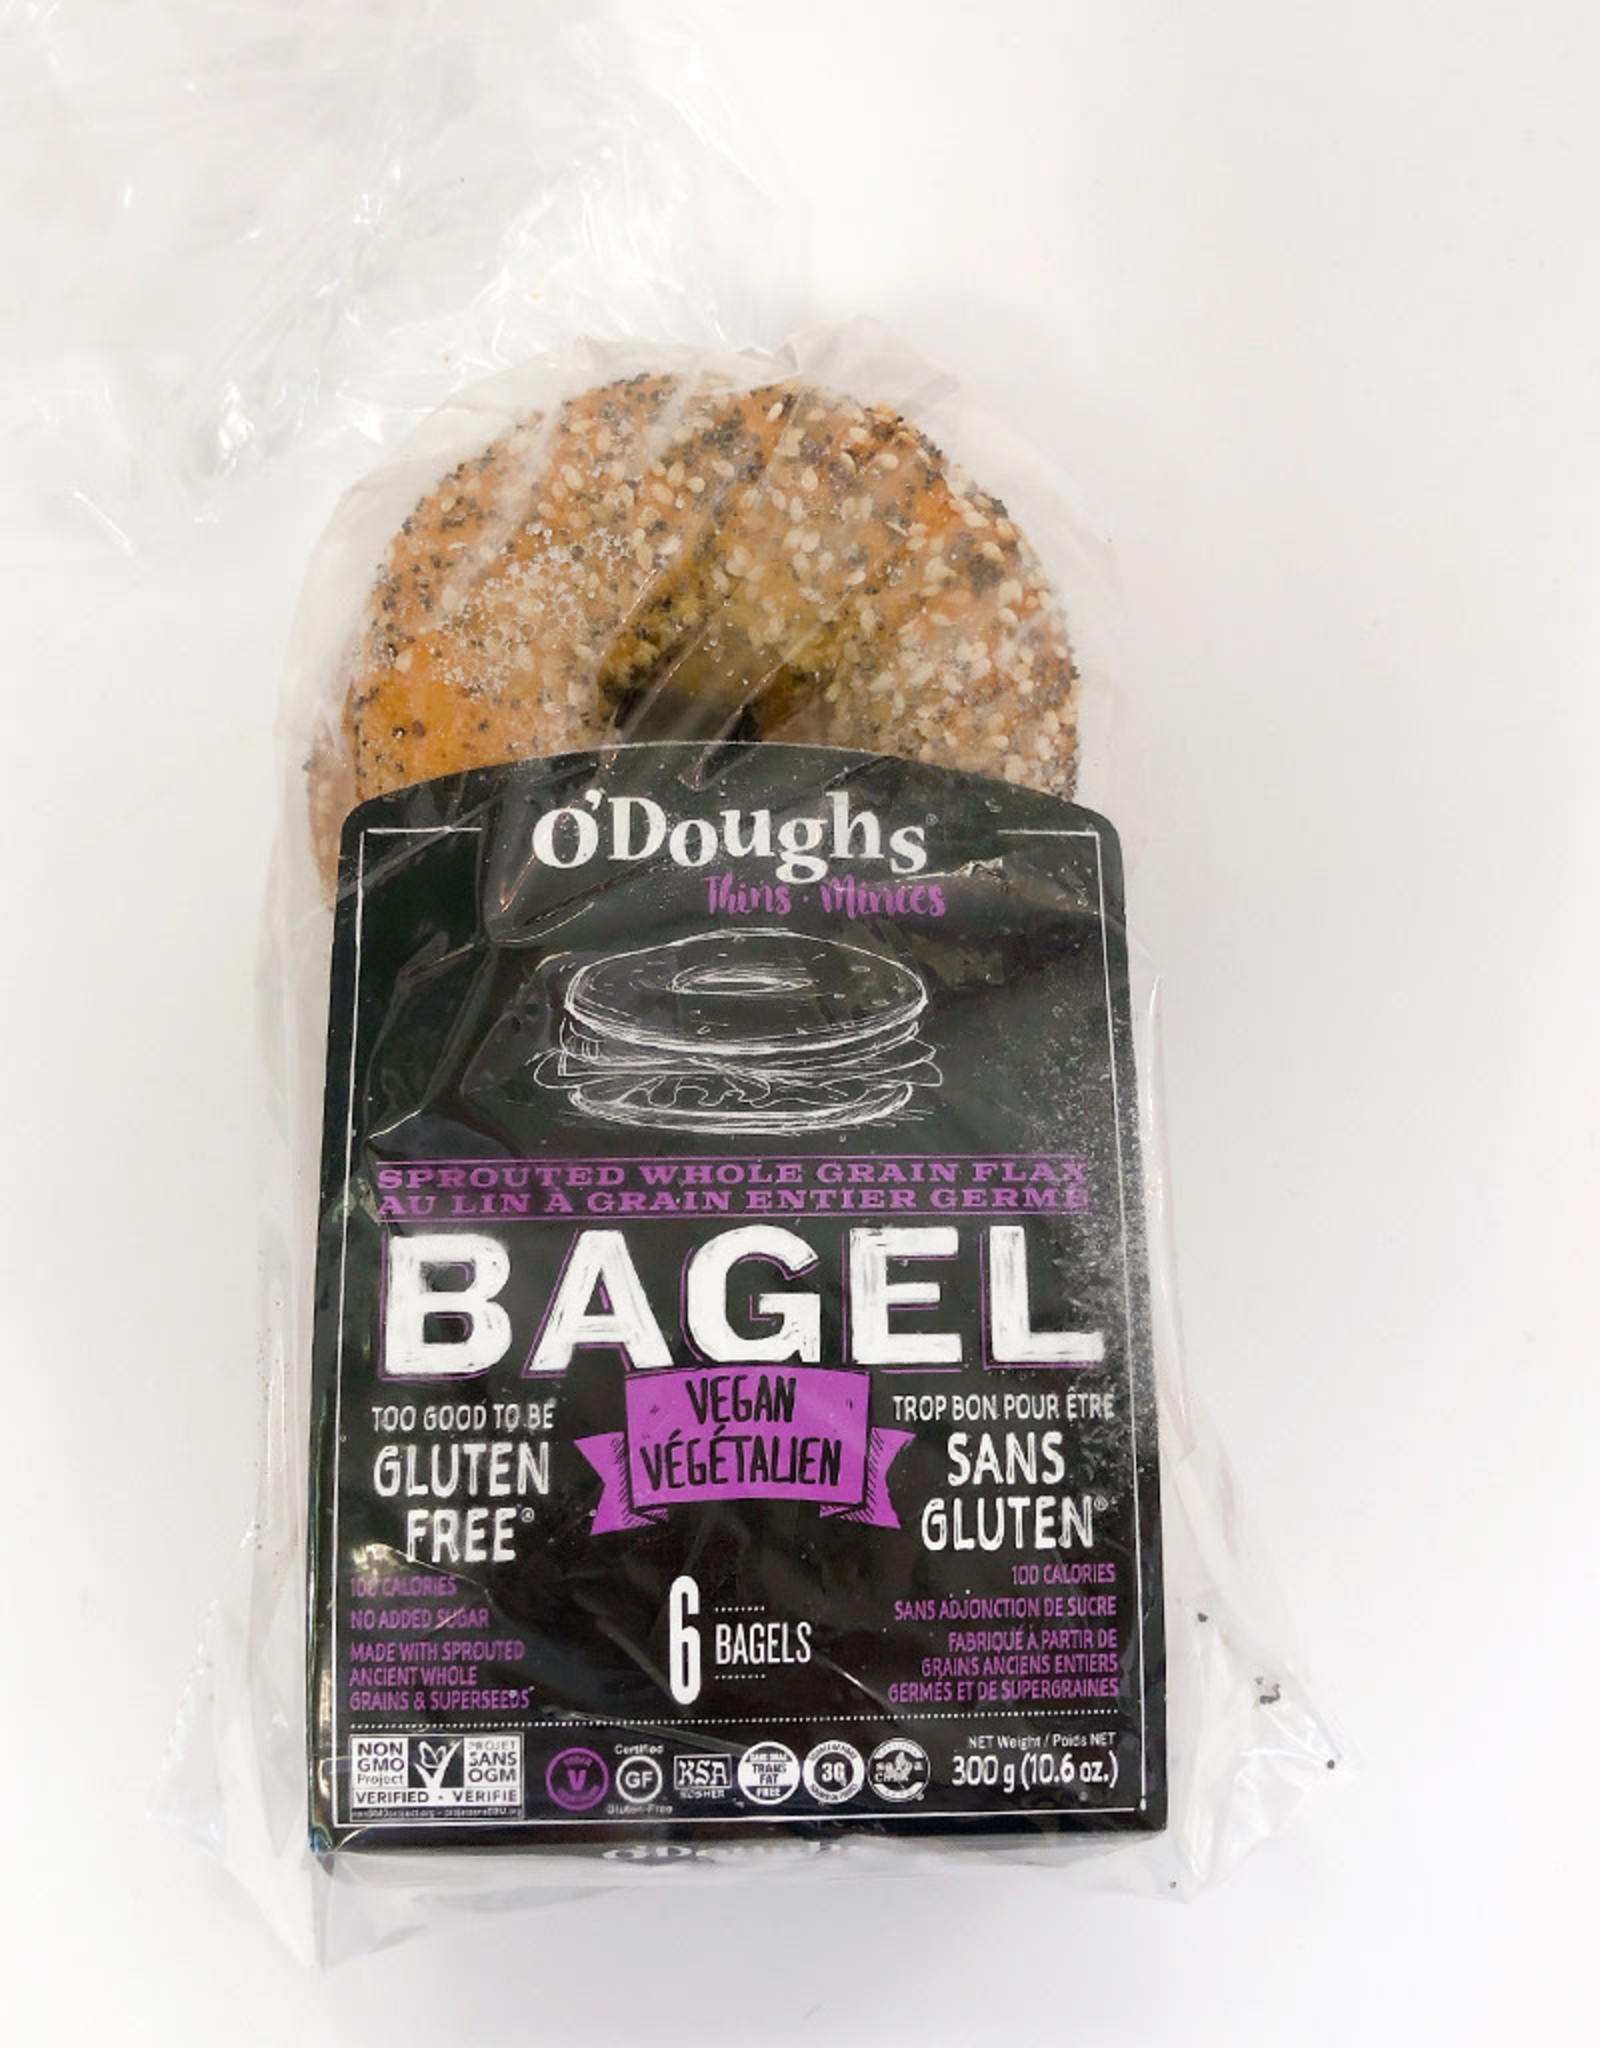 O'Doughs ODoughs - Bagels, Spouted Whole Grain Flax